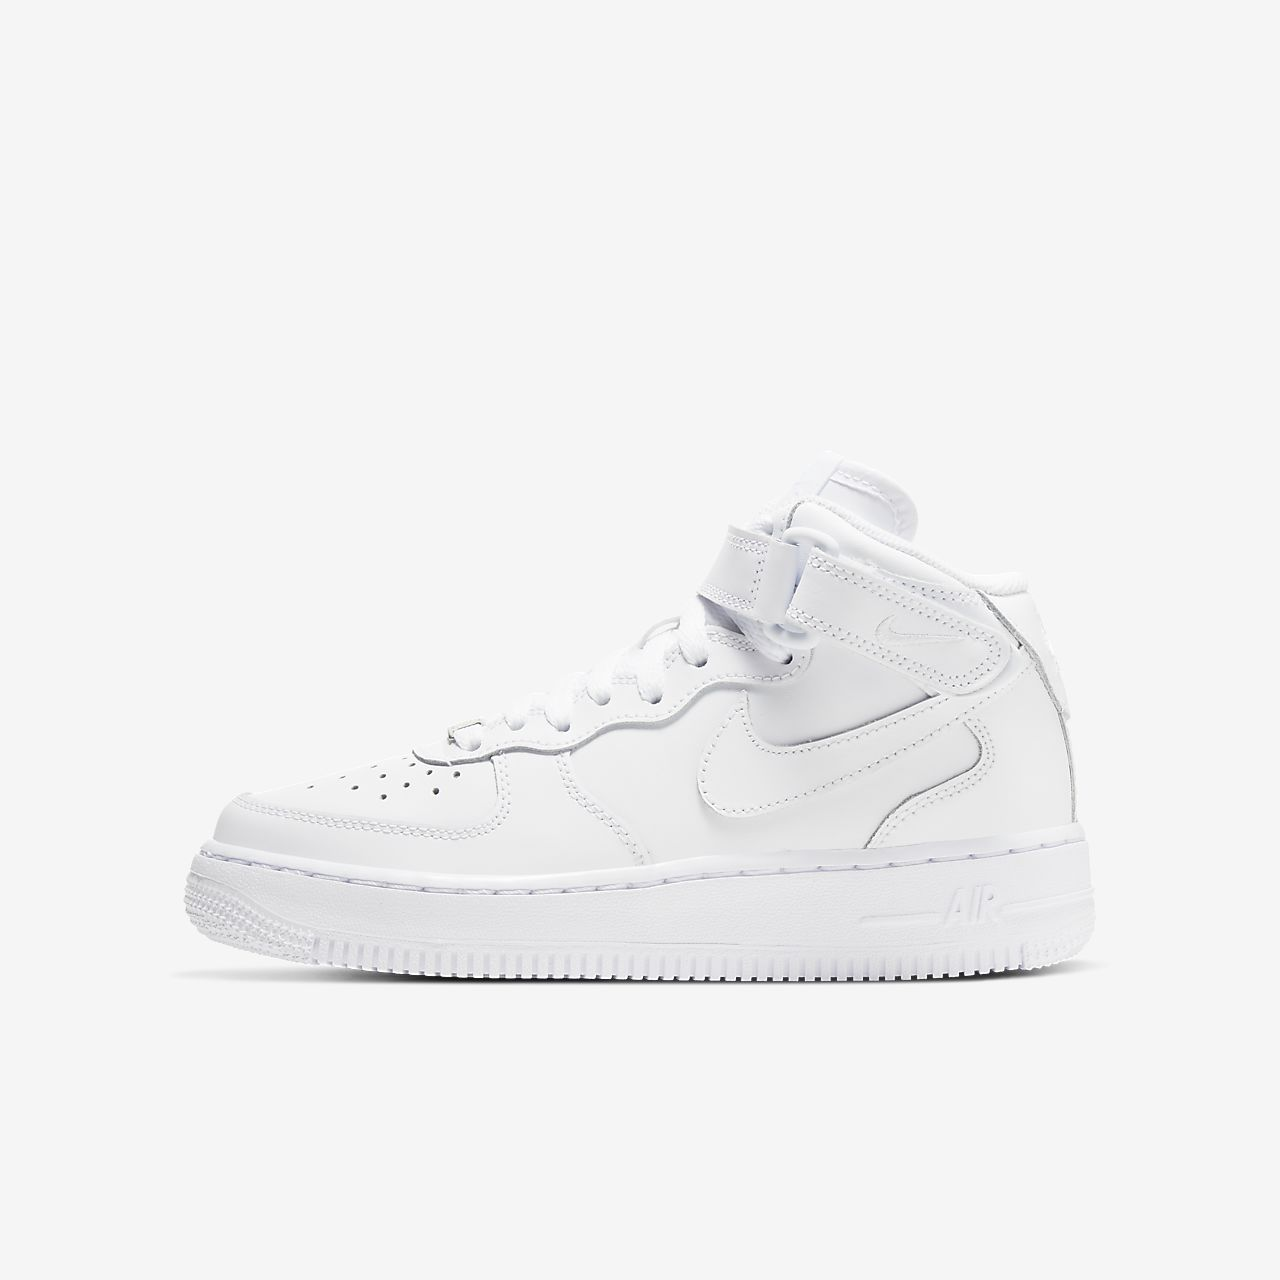 separation shoes 40239 89454 Big Kids  Shoe. Nike Air Force 1 Mid 06